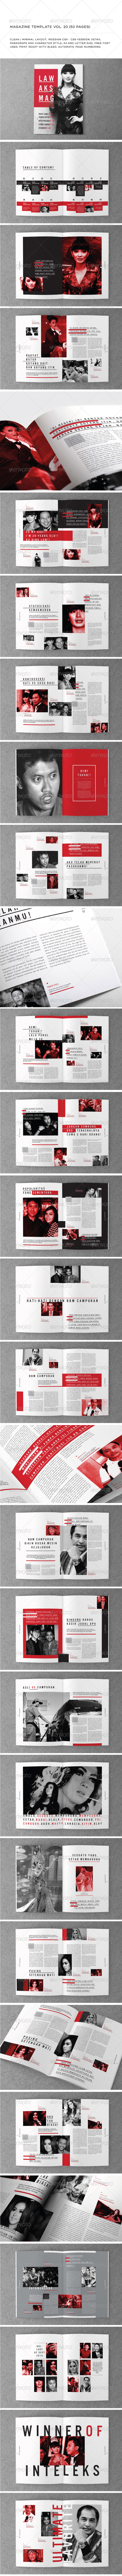 GraphicRiver A4 Letter 50 Pages Mgz Vol 20 5744164